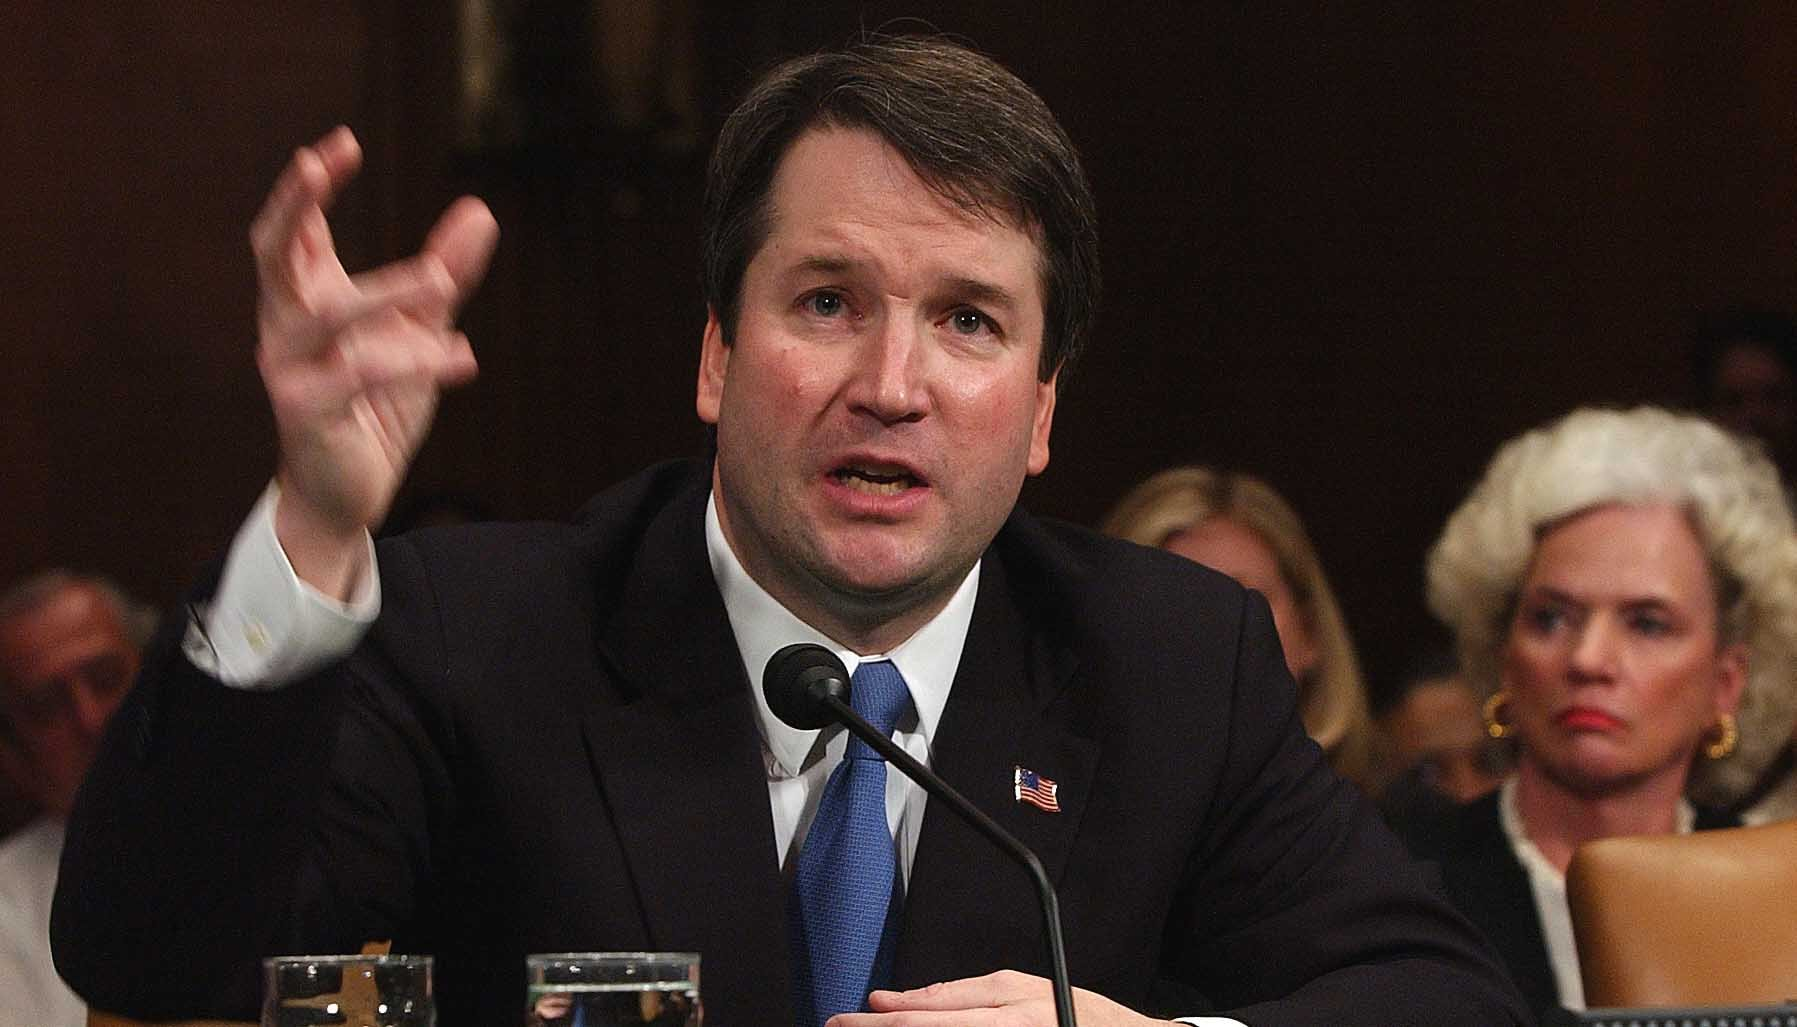 Tennessee lawmakers reacts to Brett Kavanaugh's nomination to Supreme Court